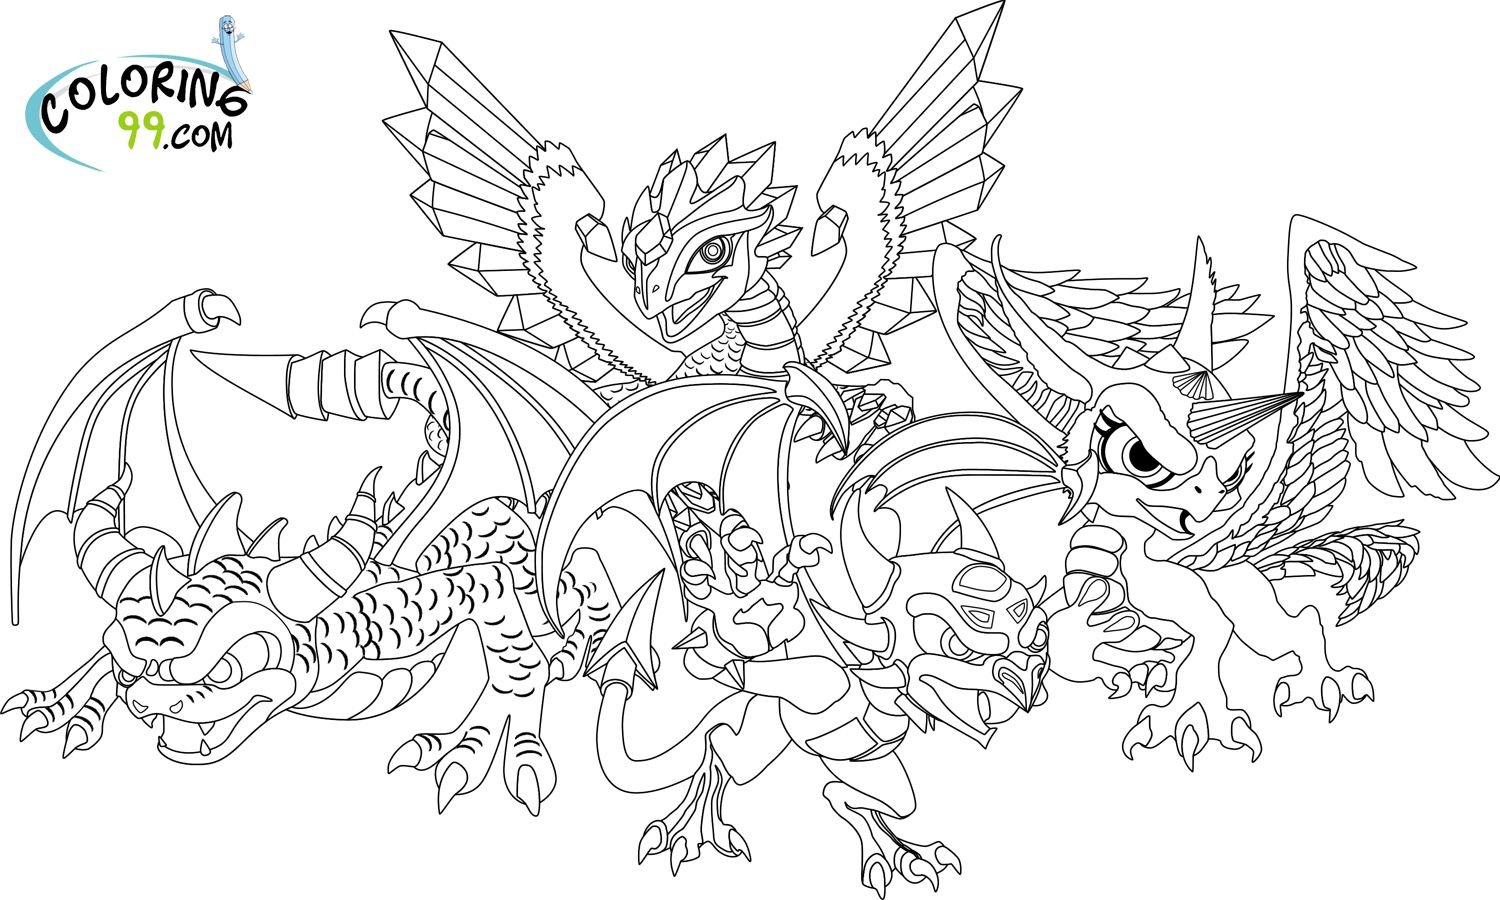 Skylanders Dragons Coloring Pages | Coloring99.com | COLORING ...